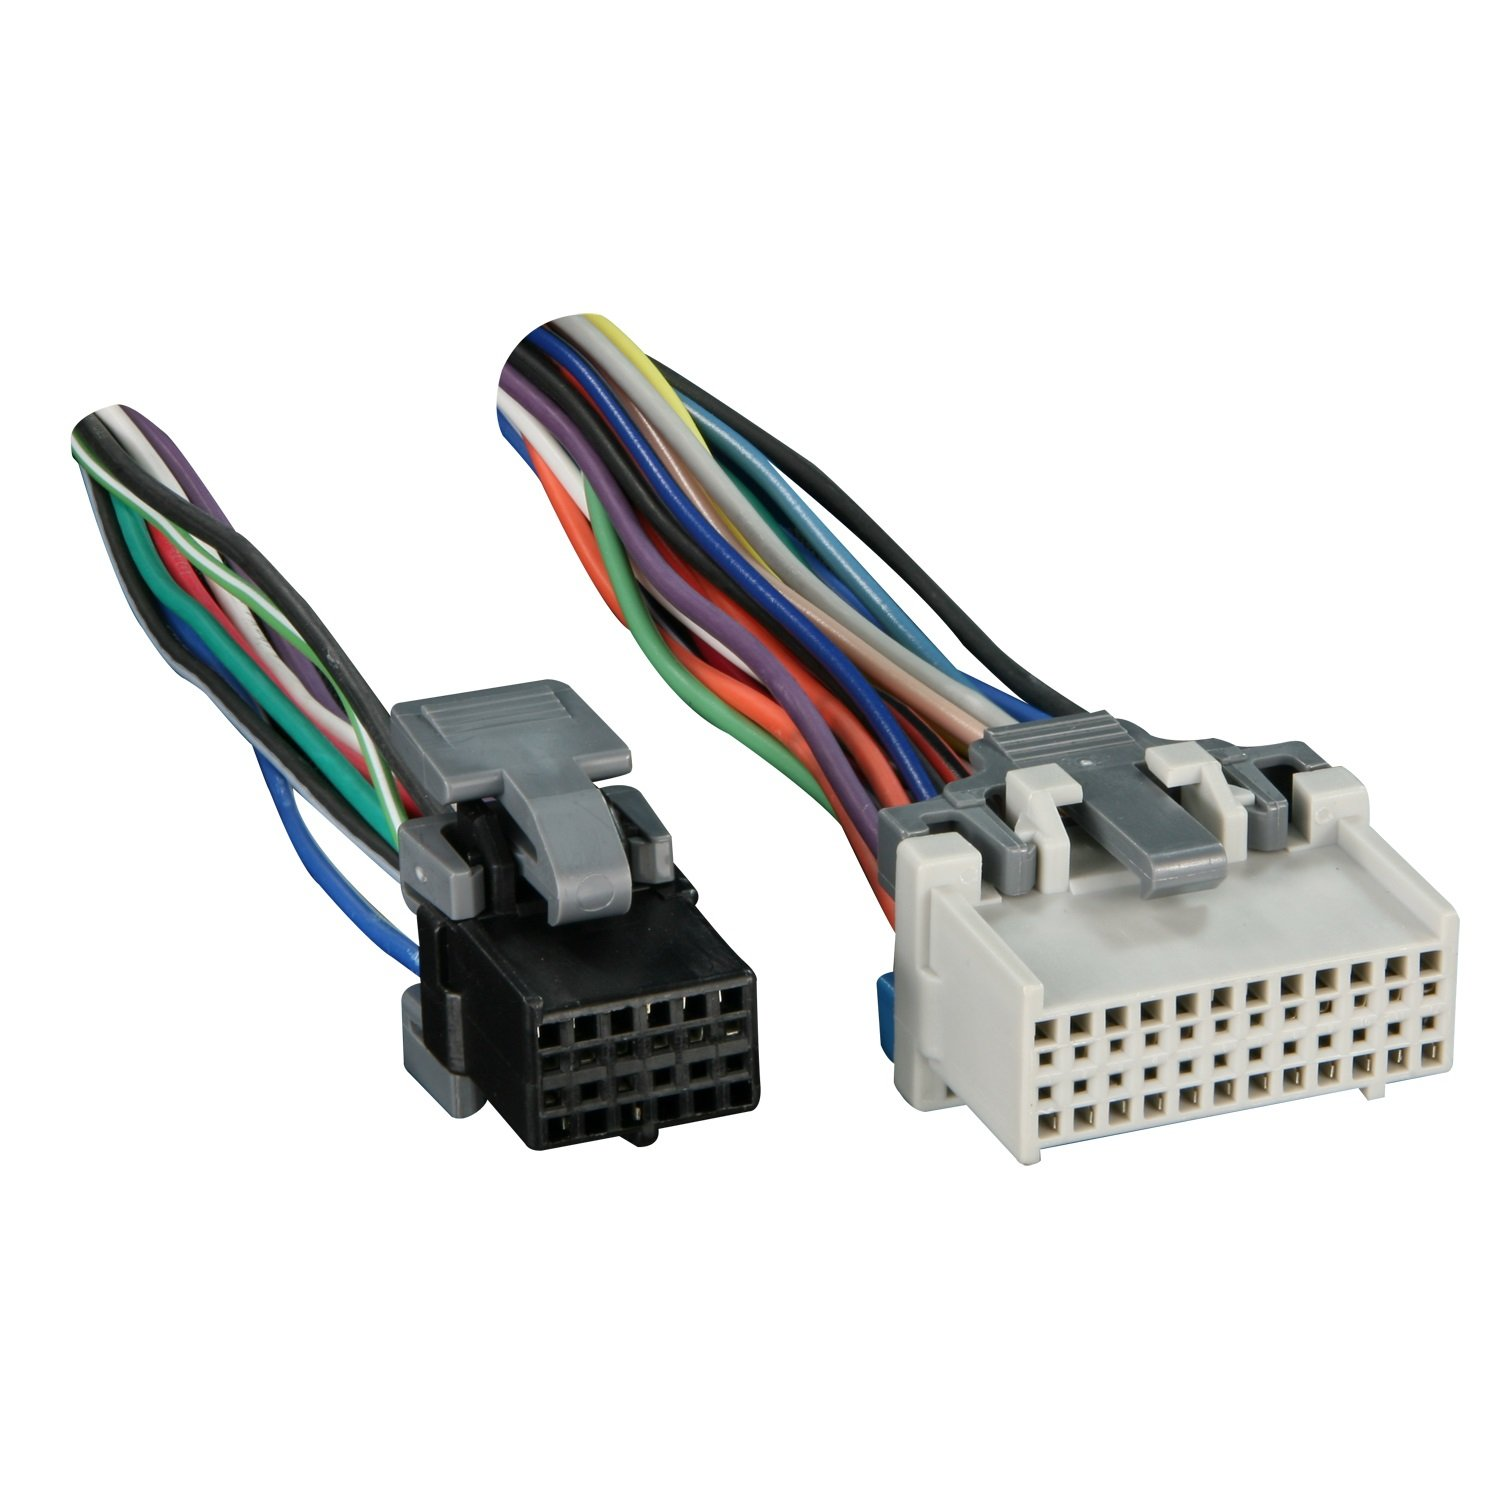 711log4bdML._SL1500_ amazon com metra turbowires 71 2003 1 wiring harness car electronics wire harnesses at bayanpartner.co